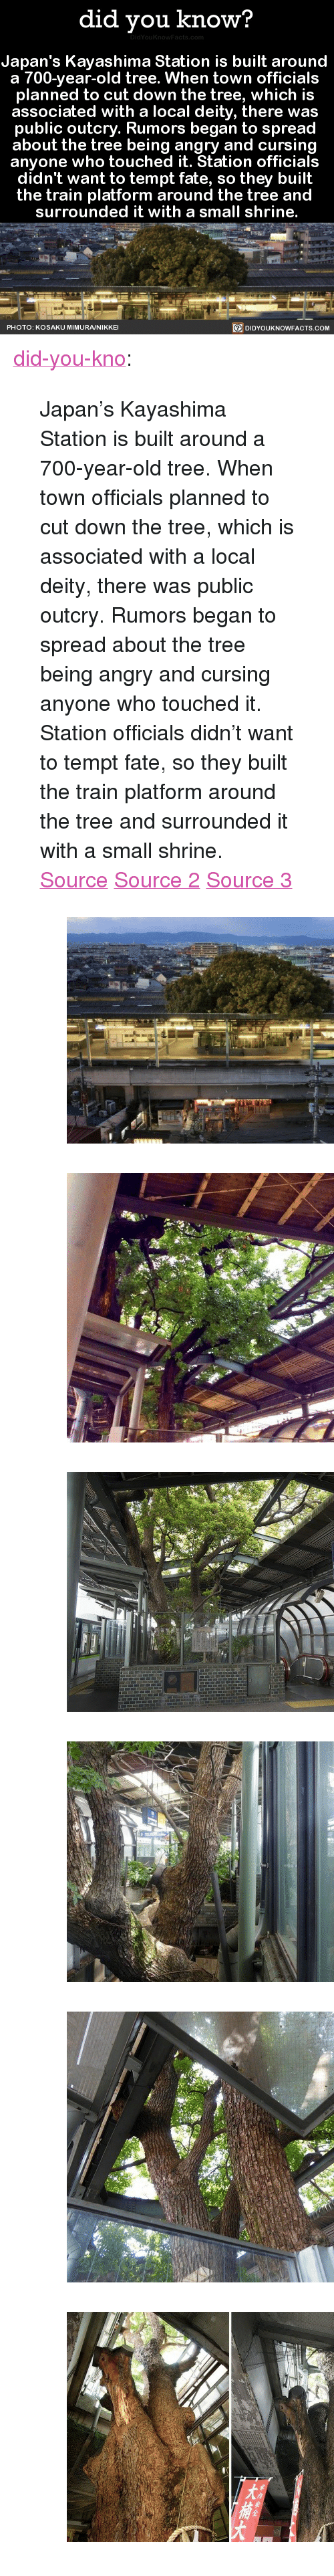 """Tumblr, Blog, and Http: did you know?  Japan's Kayashima Station is built around  a 700-vear-old tree. When town officials  planned to cut down the tree, which is  associated with a local deity, there was  public outcry. Rumors began to spread  about the tree being angry and cursin  anyone who touched it. Station officials  didn't want to tempt fate, so they built  the train platform around the tree and  surrounded it with a small shrine.  PHOTO: KOSAKU MIMURA/NIKKE  DIDYOUKNOWFACTS.CoM <p><a href=""""http://didyouknowblog.com/post/158719101556/japans-kayashima-station-is-built-around-a"""" class=""""tumblr_blog"""">did-you-kno</a>:</p> <blockquote> <p>Japan's Kayashima Station is built around  a 700-year-old tree. When town officials  planned to cut down the tree, which is  associated with a local deity, there was  public outcry. Rumors began to spread  about the tree being angry and cursing  anyone who touched it. Station officials  didn't want to tempt fate, so they built  the train platform around the tree and  surrounded it with a small shrine.  <a href=""""http://www.spoon-tamago.com/2017/01/21/kayashima-the-japanese-train-station-built-around-a-700-year-old-tree/"""">Source</a> <a href=""""http://mymodernmet.com/kayashima-station-camphor-tree/"""">Source 2</a> <a href=""""http://www.atlasobscura.com/places/kayashima-station"""">Source 3</a></p> <figure class=""""tmblr-full"""" data-orig-height=""""339"""" data-orig-width=""""540""""><img src=""""https://78.media.tumblr.com/6db5d29da101ddfaf26022f04de5b681/tumblr_inline_on74fjj7621uy8wg3_540.jpg"""" data-orig-height=""""339"""" data-orig-width=""""540""""/></figure><figure class=""""tmblr-full"""" data-orig-height=""""403"""" data-orig-width=""""540""""><img src=""""https://78.media.tumblr.com/add8874ad450eeefd38d59773a5c0daf/tumblr_inline_on74fjyMYv1uy8wg3_540.jpg"""" data-orig-height=""""403"""" data-orig-width=""""540""""/></figure><figure class=""""tmblr-full"""" data-orig-height=""""359"""" data-orig-width=""""540""""><img src=""""https://78.media.tumblr.com/6884871ae50eed2103c666942ea81536/tumblr_inline_on74fkVp341uy8wg3_540"""